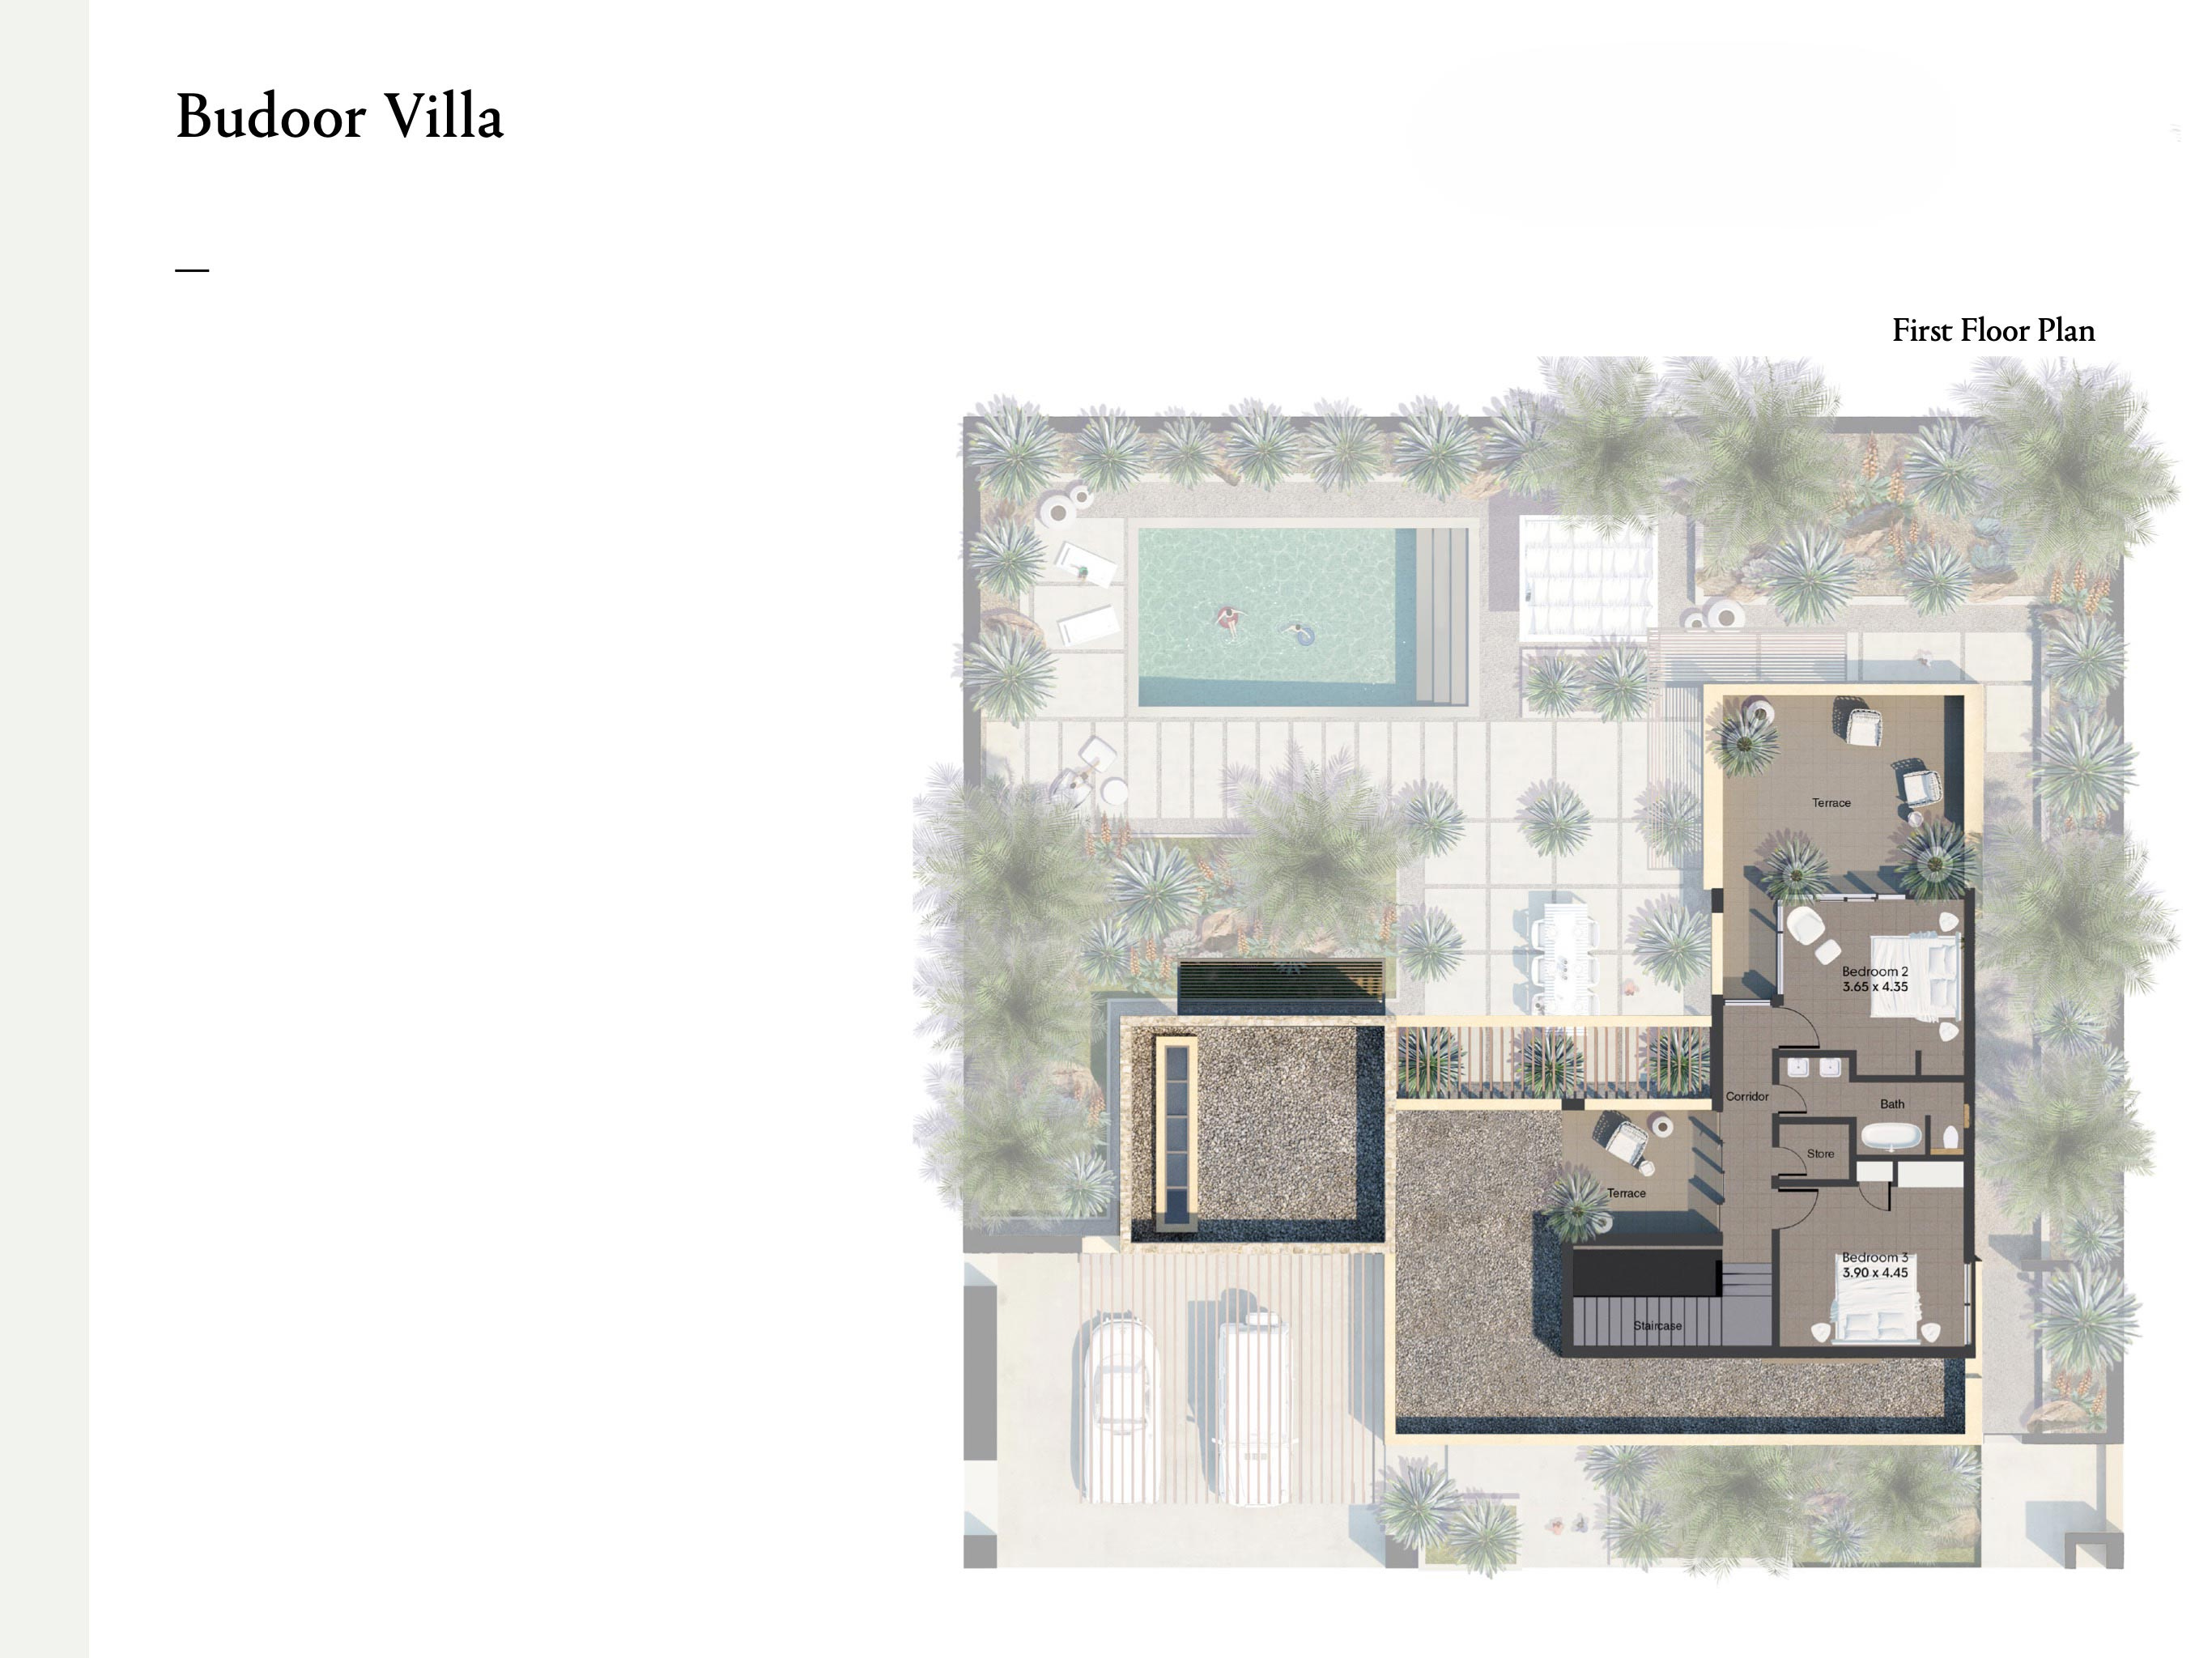 Budoor Villa 3 Bedroom with a size area of 419 sqm